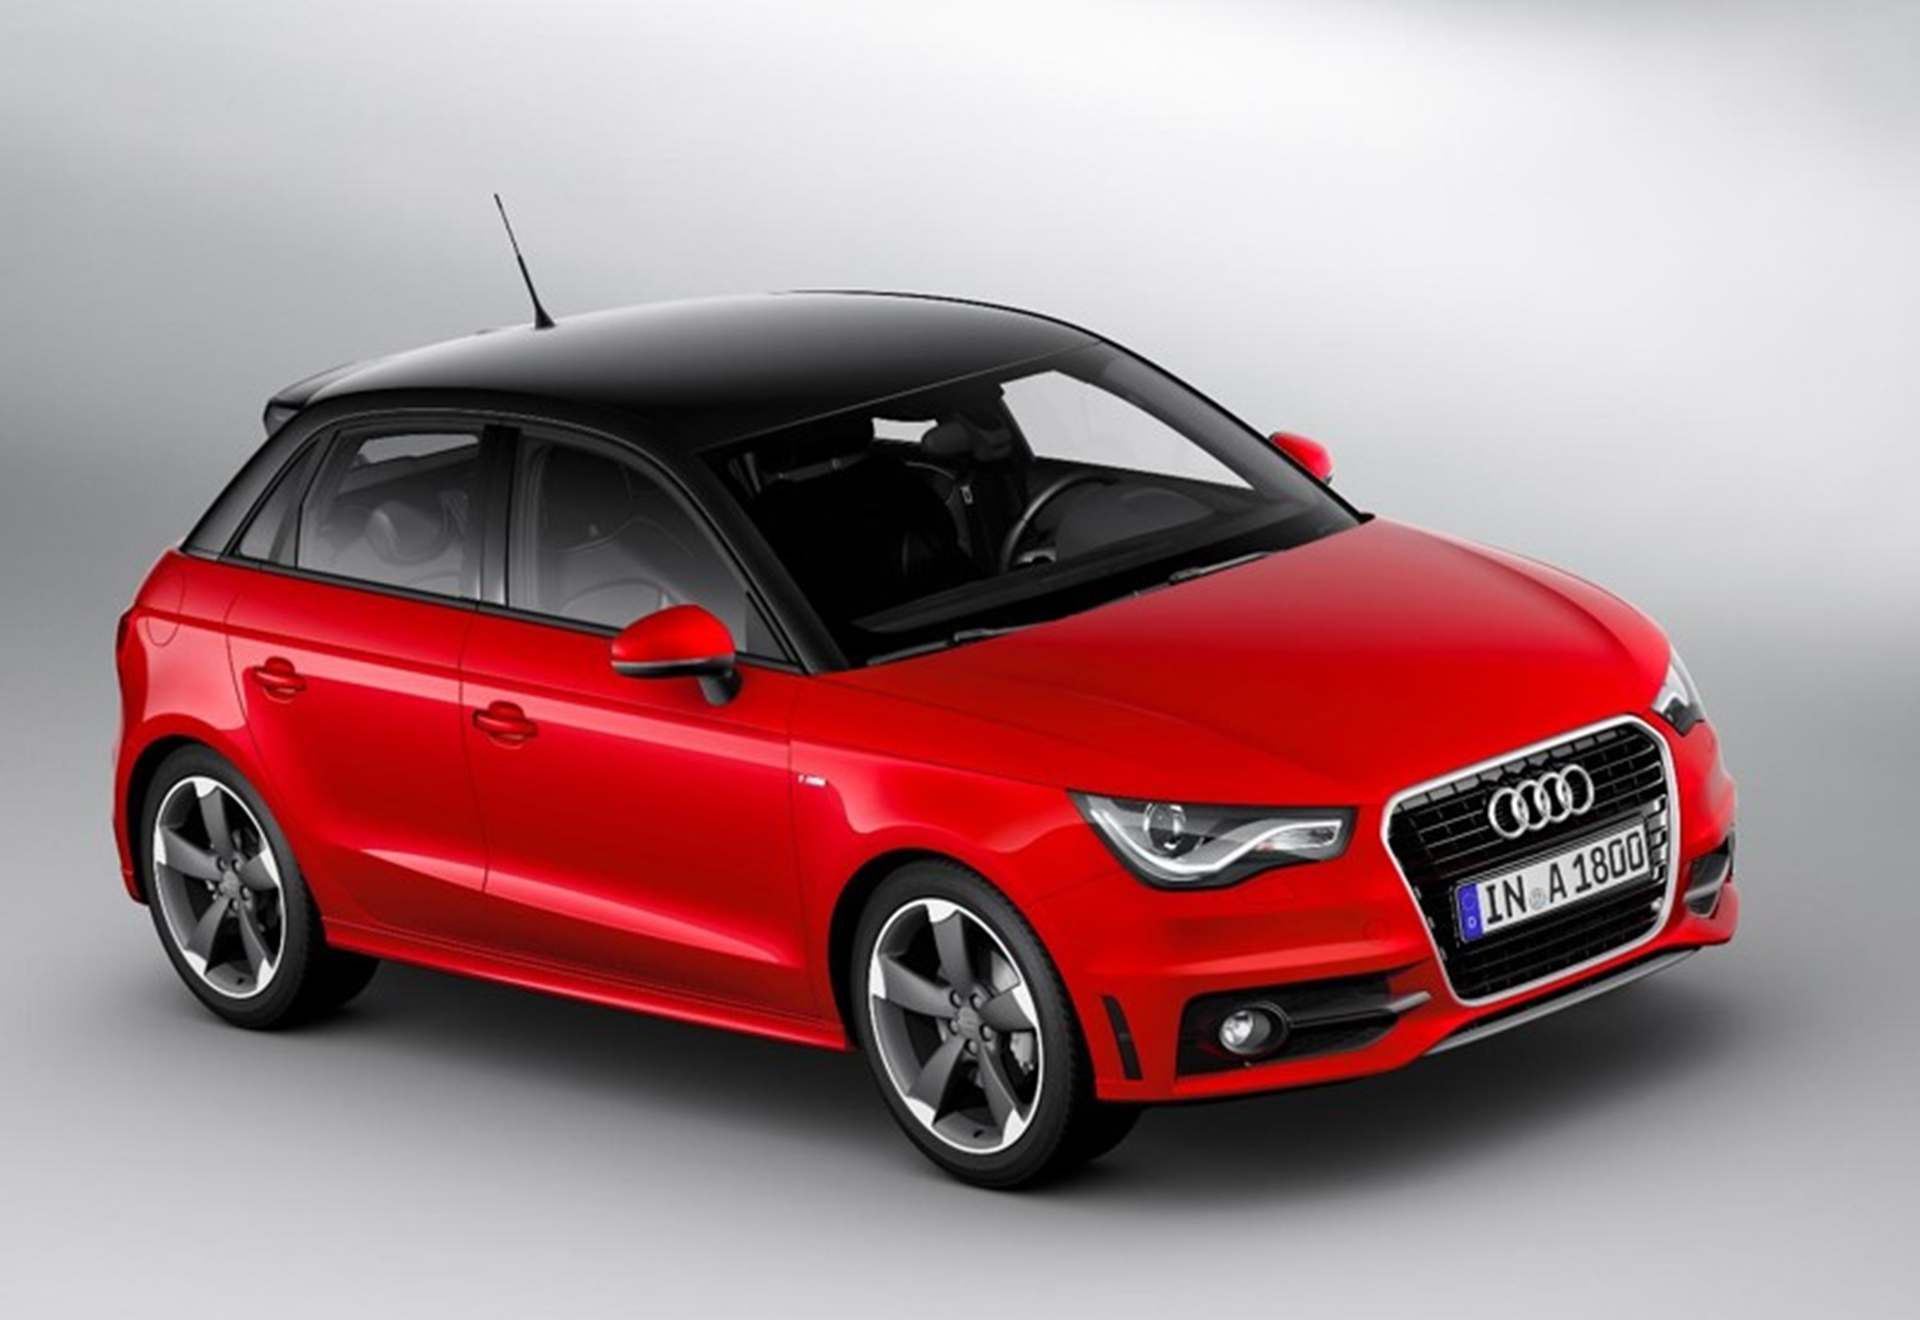 New Audi A1 Sportback Front View